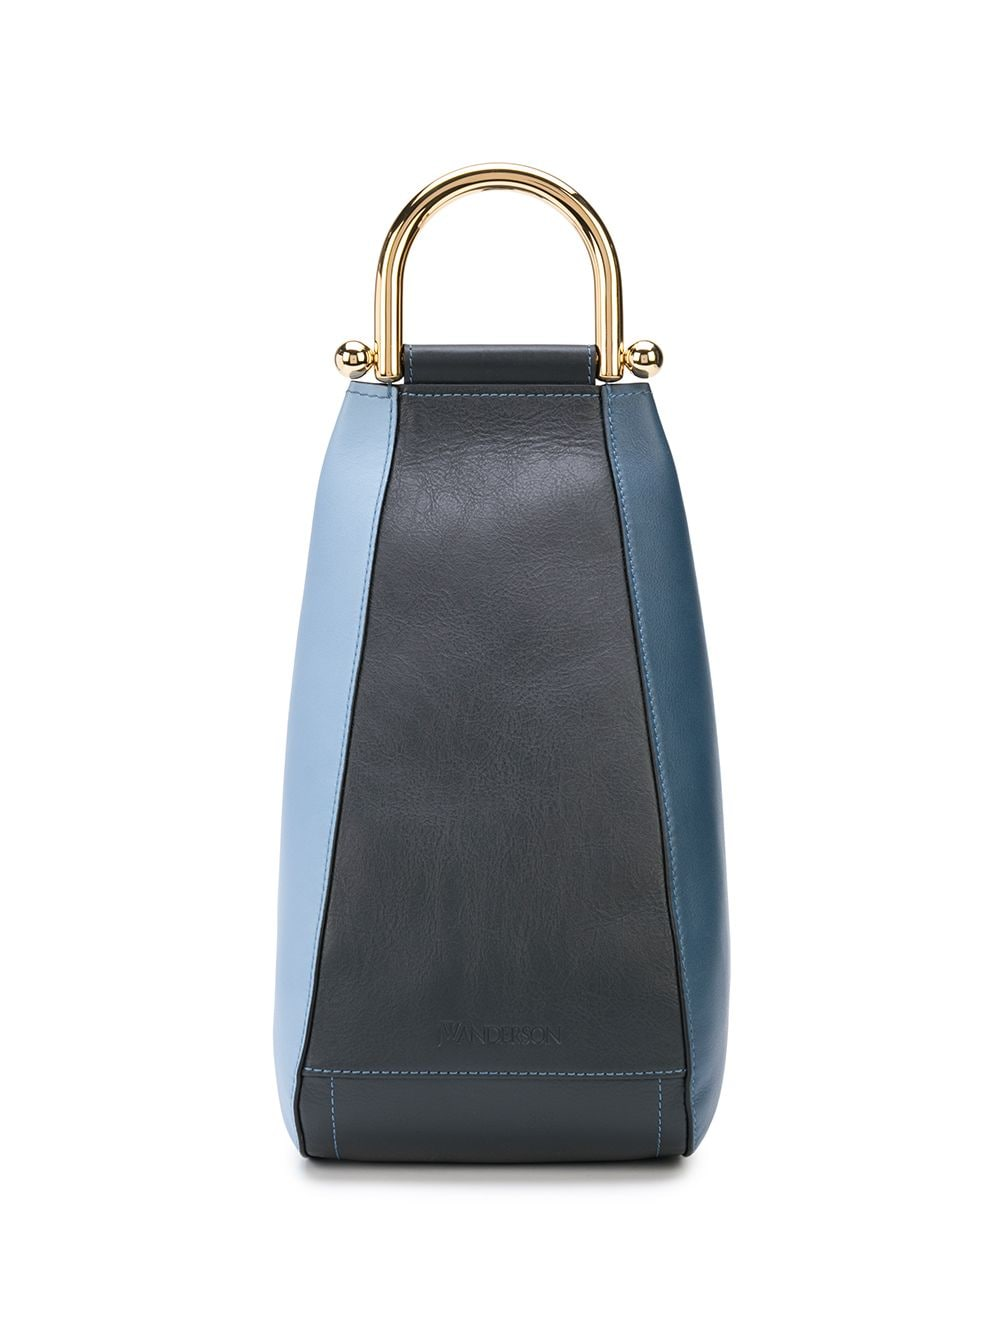 JW ANDERSON WOMEN SMALL WEDGE BAG